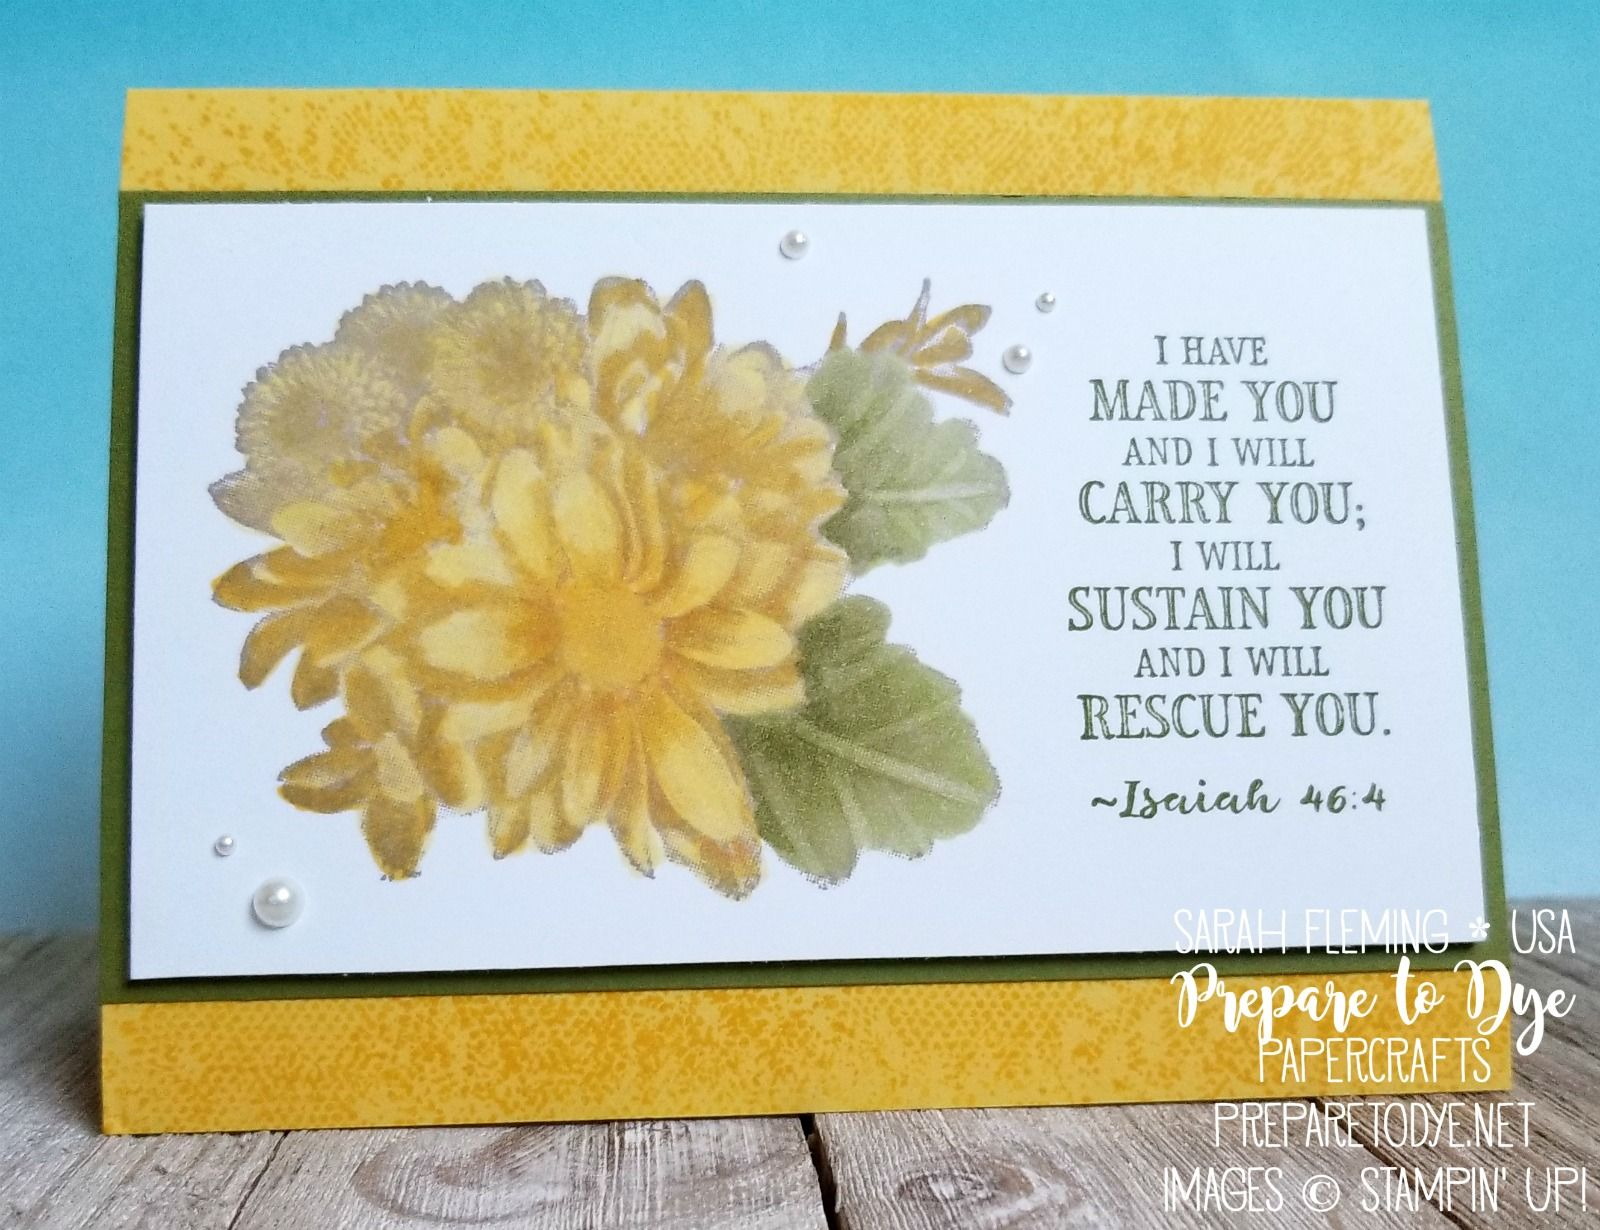 50 order during sale a bration hold on to hopetouches of texture with stampin blends handmade thinking of you or sympathy card with bible verse - Bible Verses For Sympathy Cards